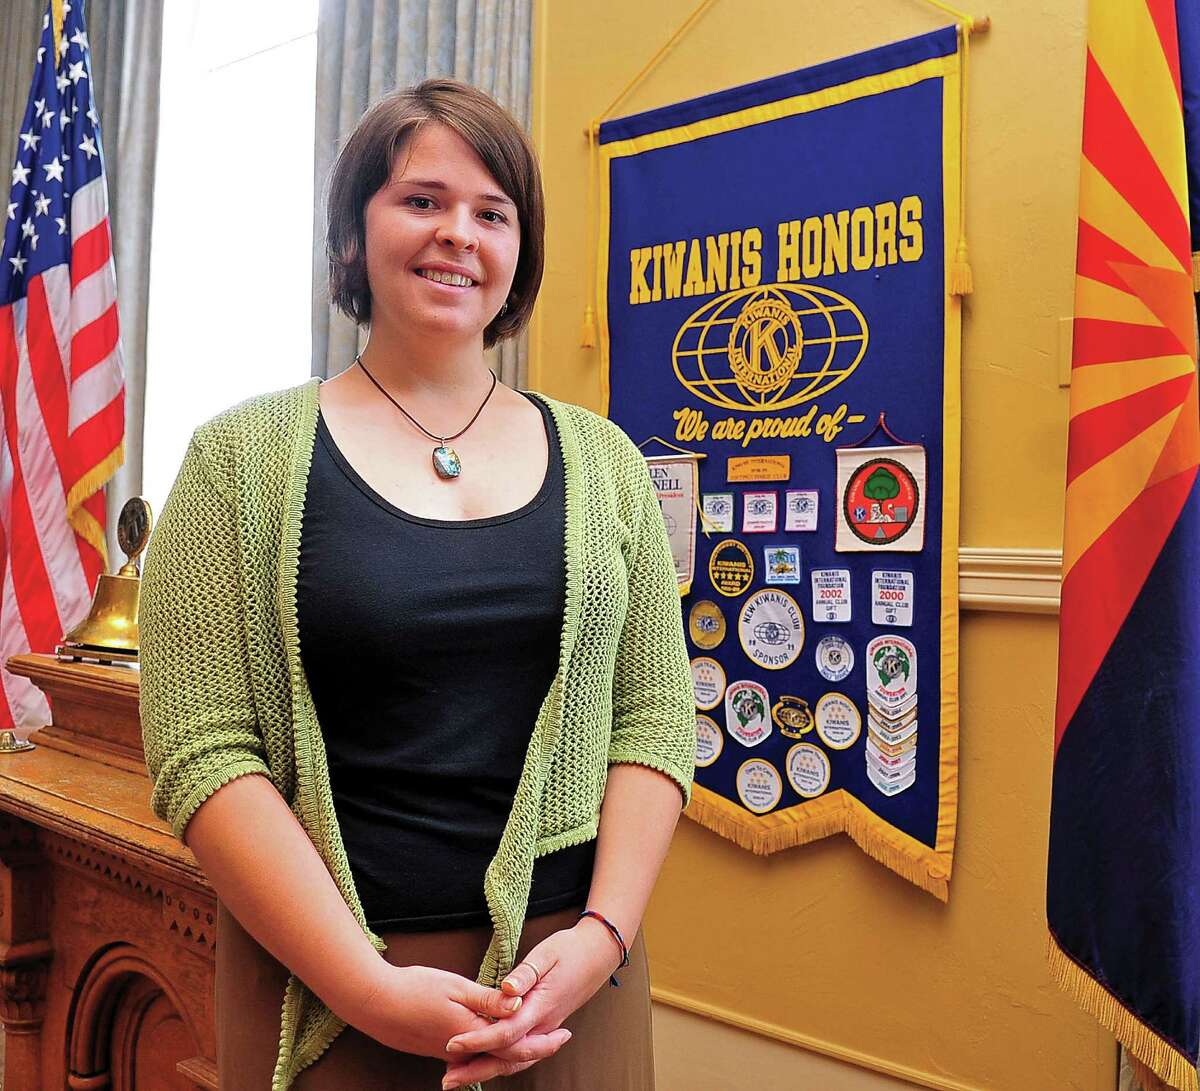 In this May 30, 2013, photo, Kayla Mueller is shown after speaking to a group in Prescott, Ariz. A statement that appeared on a militant website commonly used by the Islamic State group claimed that Mueller was killed in a Jordanian airstrike on Friday, Feb. 6, 2015, on the outskirts of the northern Syrian city of Raqqa, the militant group's main stronghold. The IS statement could not be independently verified. (AP Photo/The Daily Courier, Matt Hinshaw) MANDATORY CREDIT ORG XMIT: AZPRE101